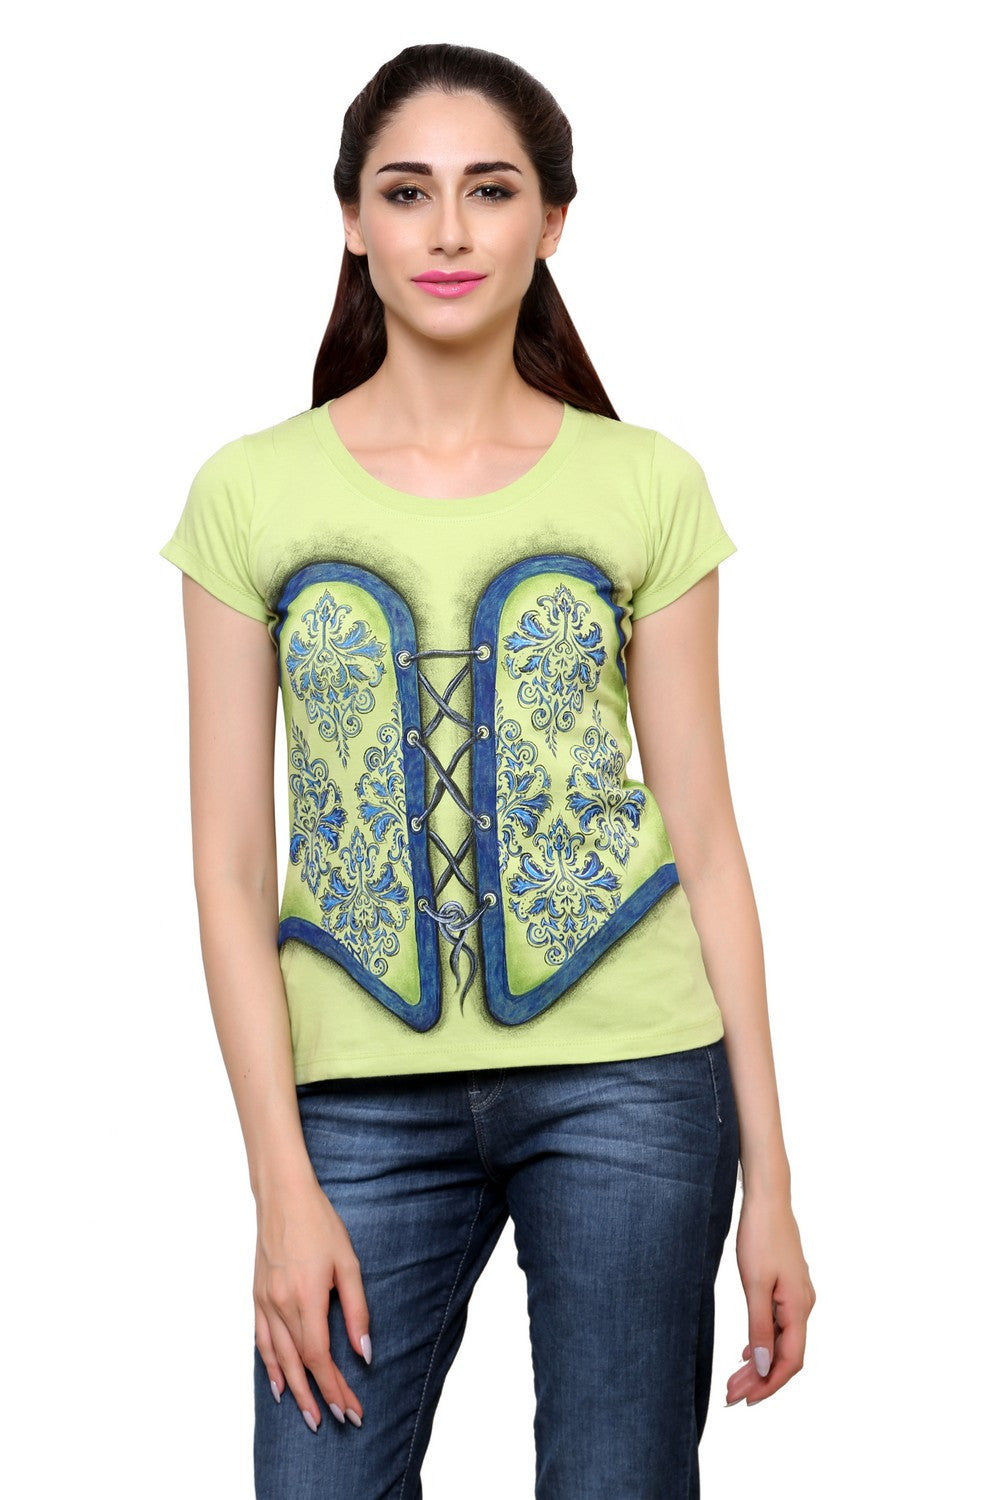 Hand-painted Contemporary Charm Green T-shirt - RANGRAGE